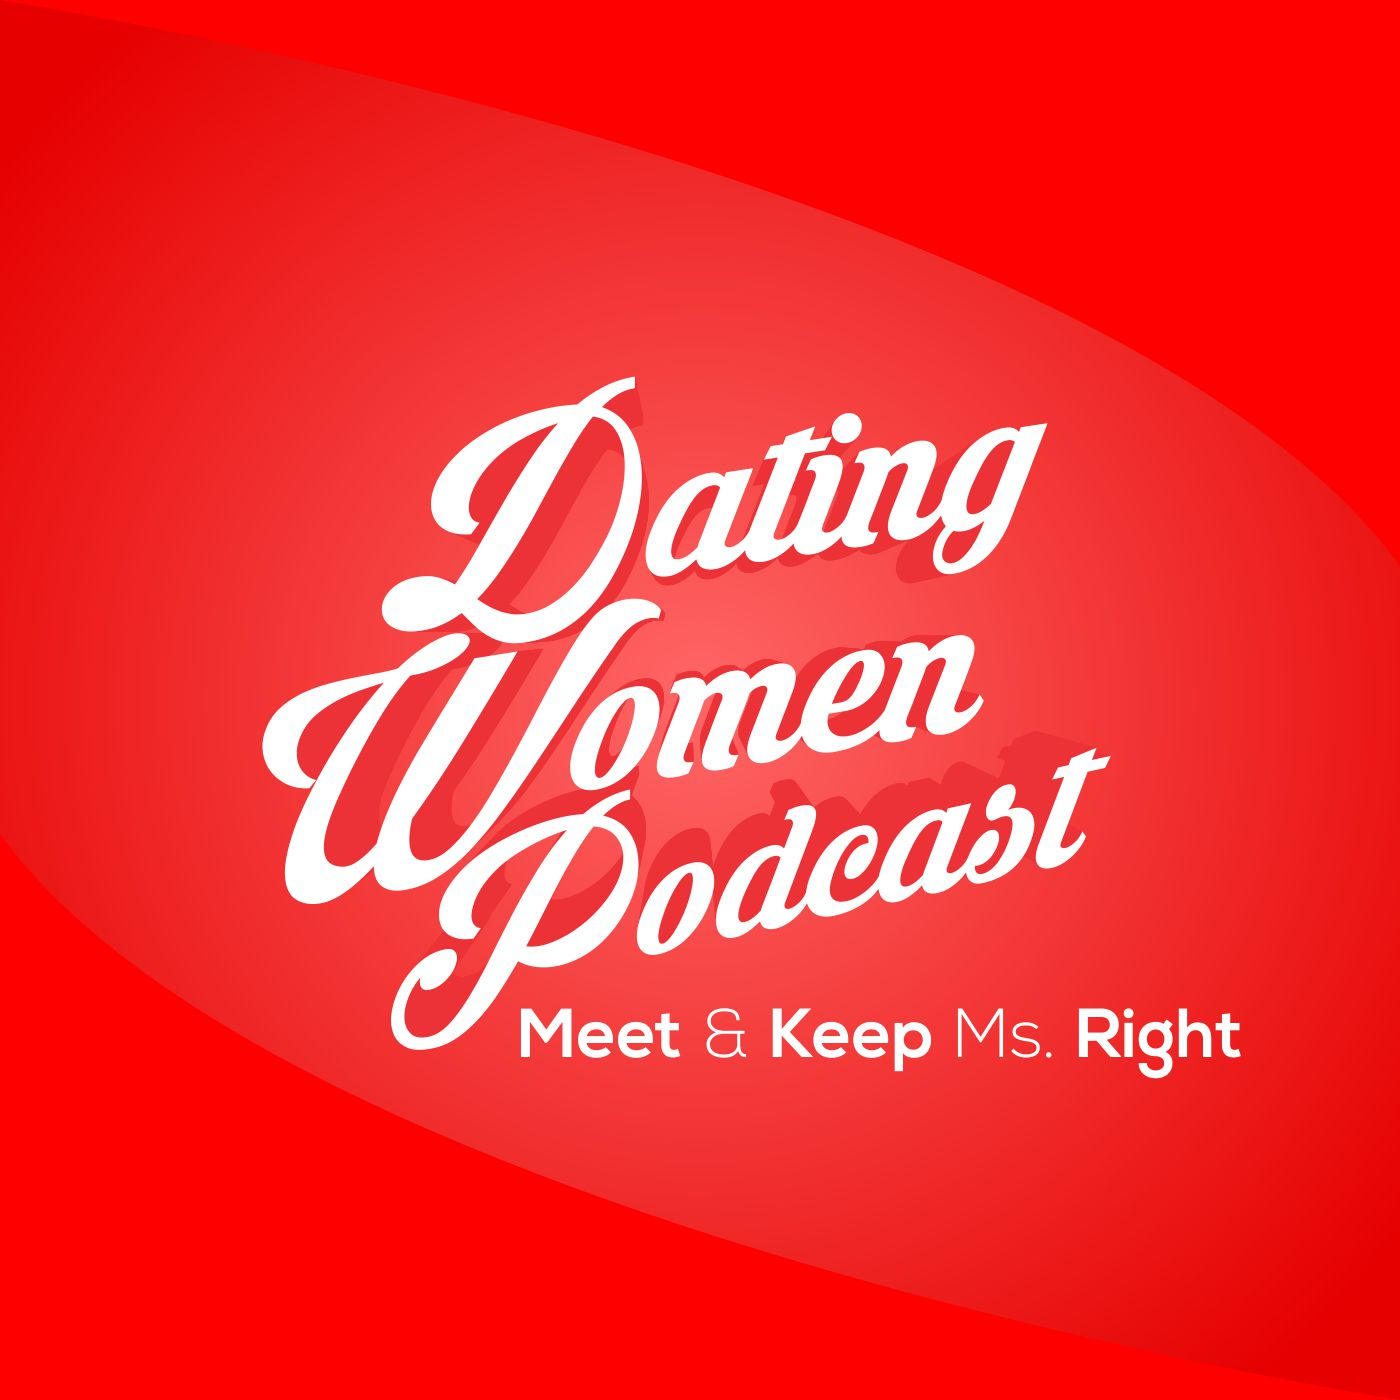 Dating Women Podcast